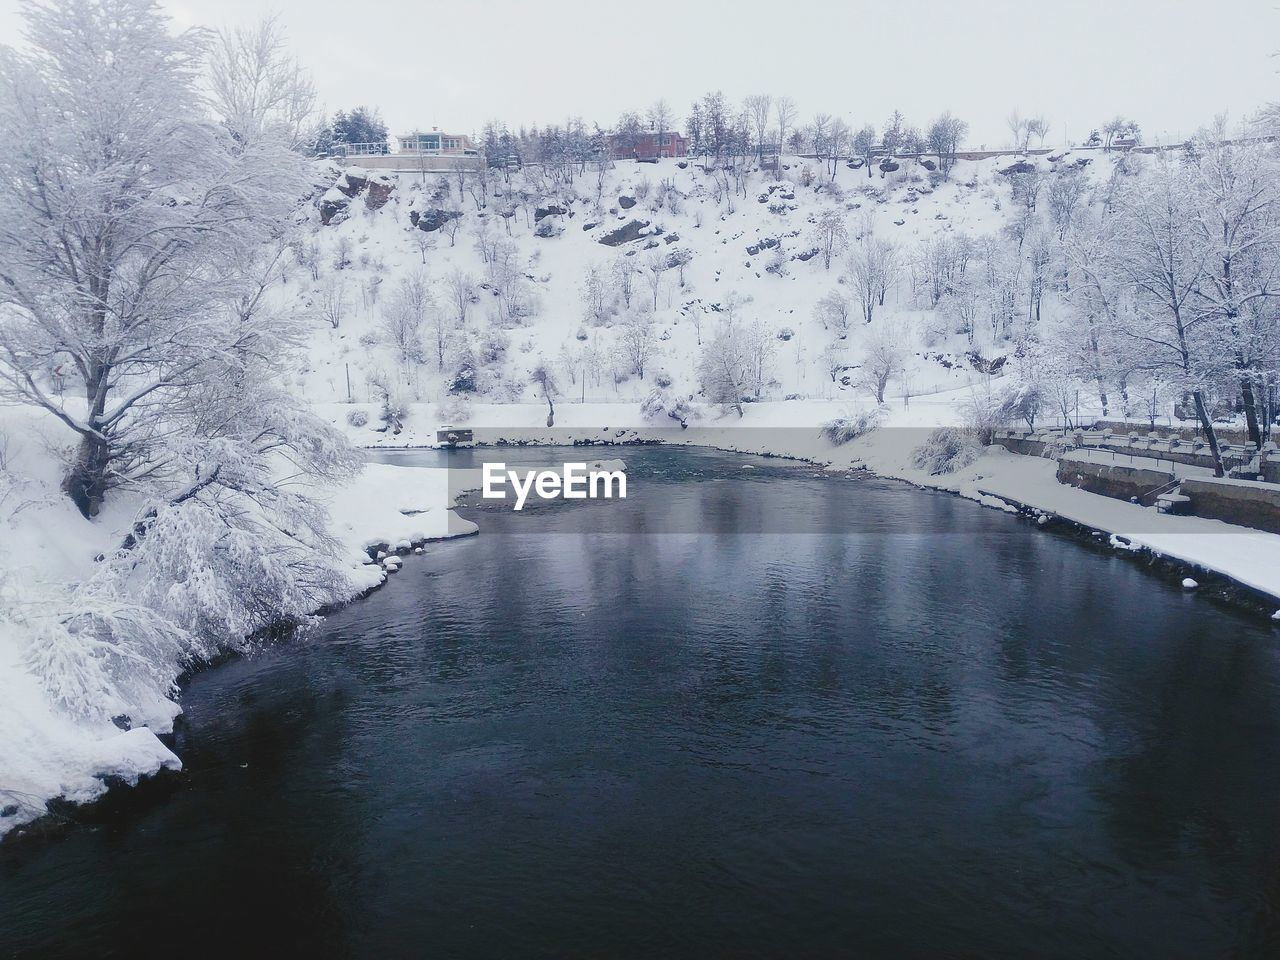 cold temperature, winter, snow, nature, beauty in nature, water, tree, tranquil scene, river, tranquility, ice, frozen, scenics, no people, outdoors, day, landscape, sky, iceberg